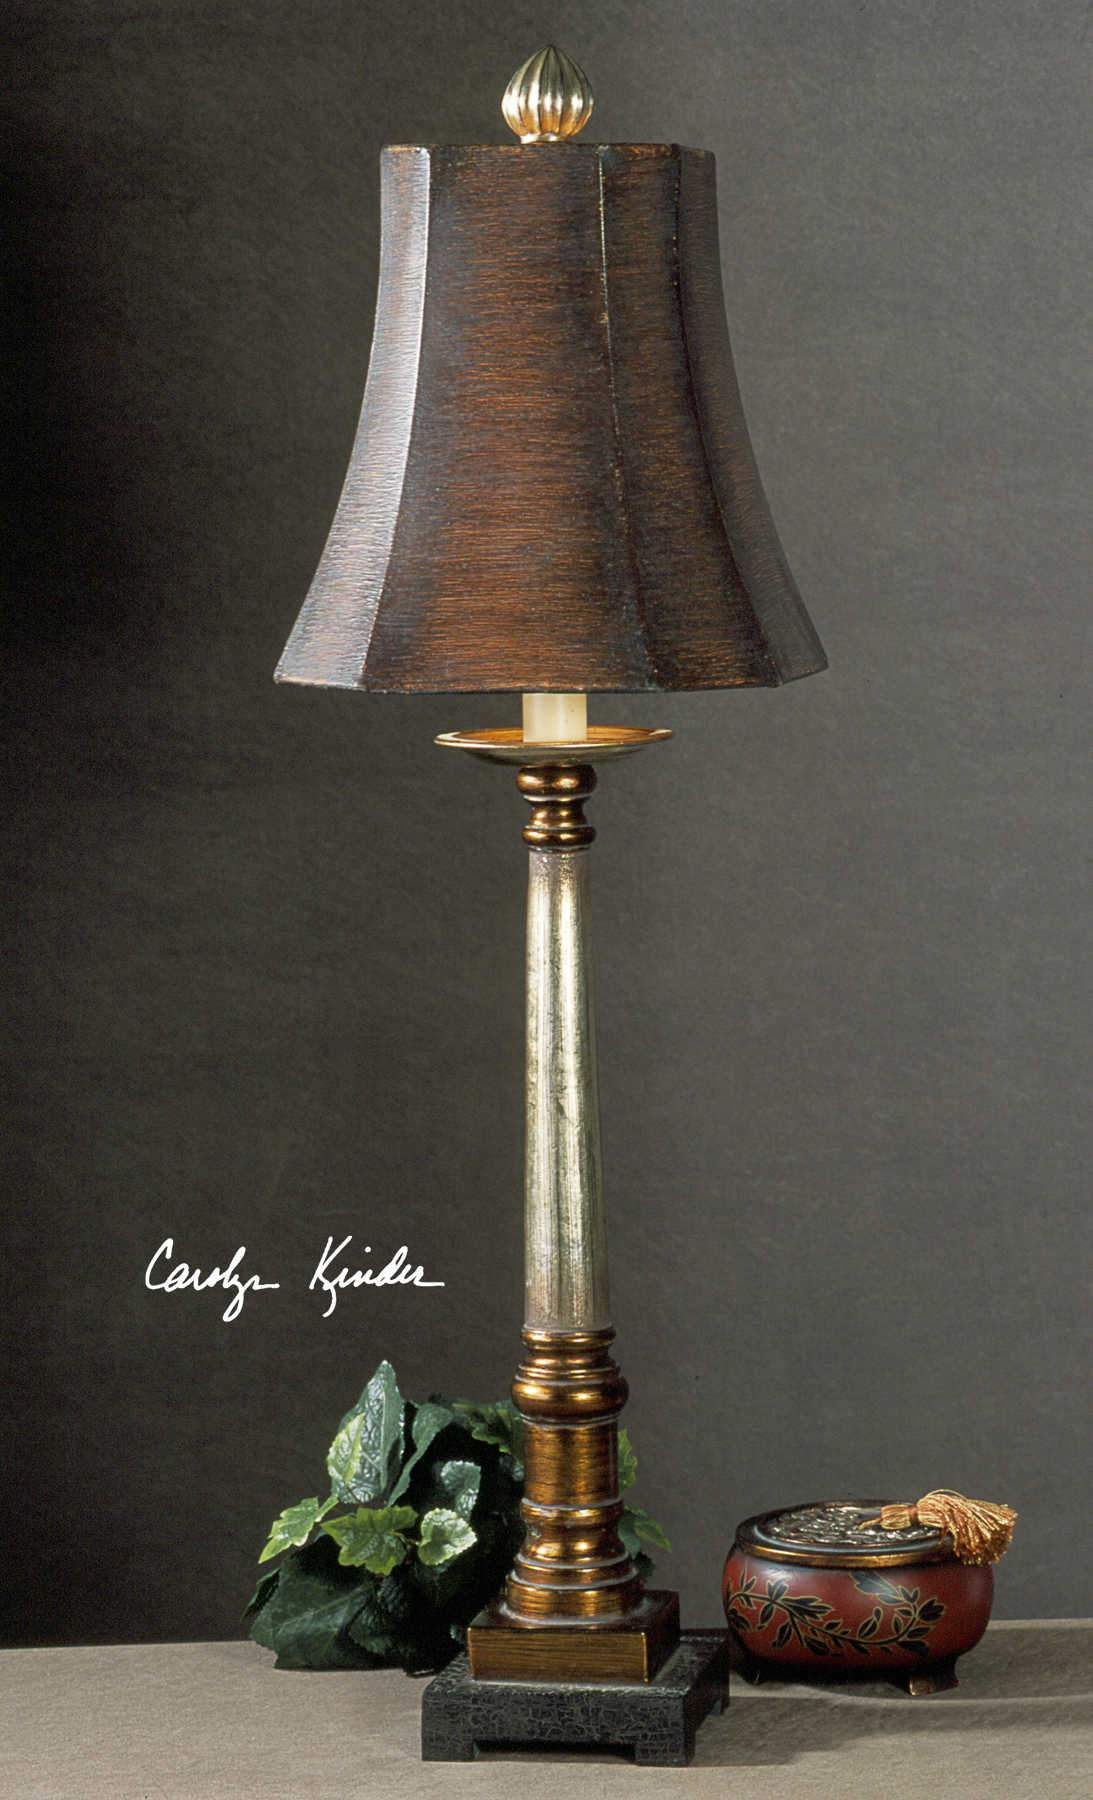 Uttermost Trent Buffet Lamp; EST SHIP: MAY 27, 2021